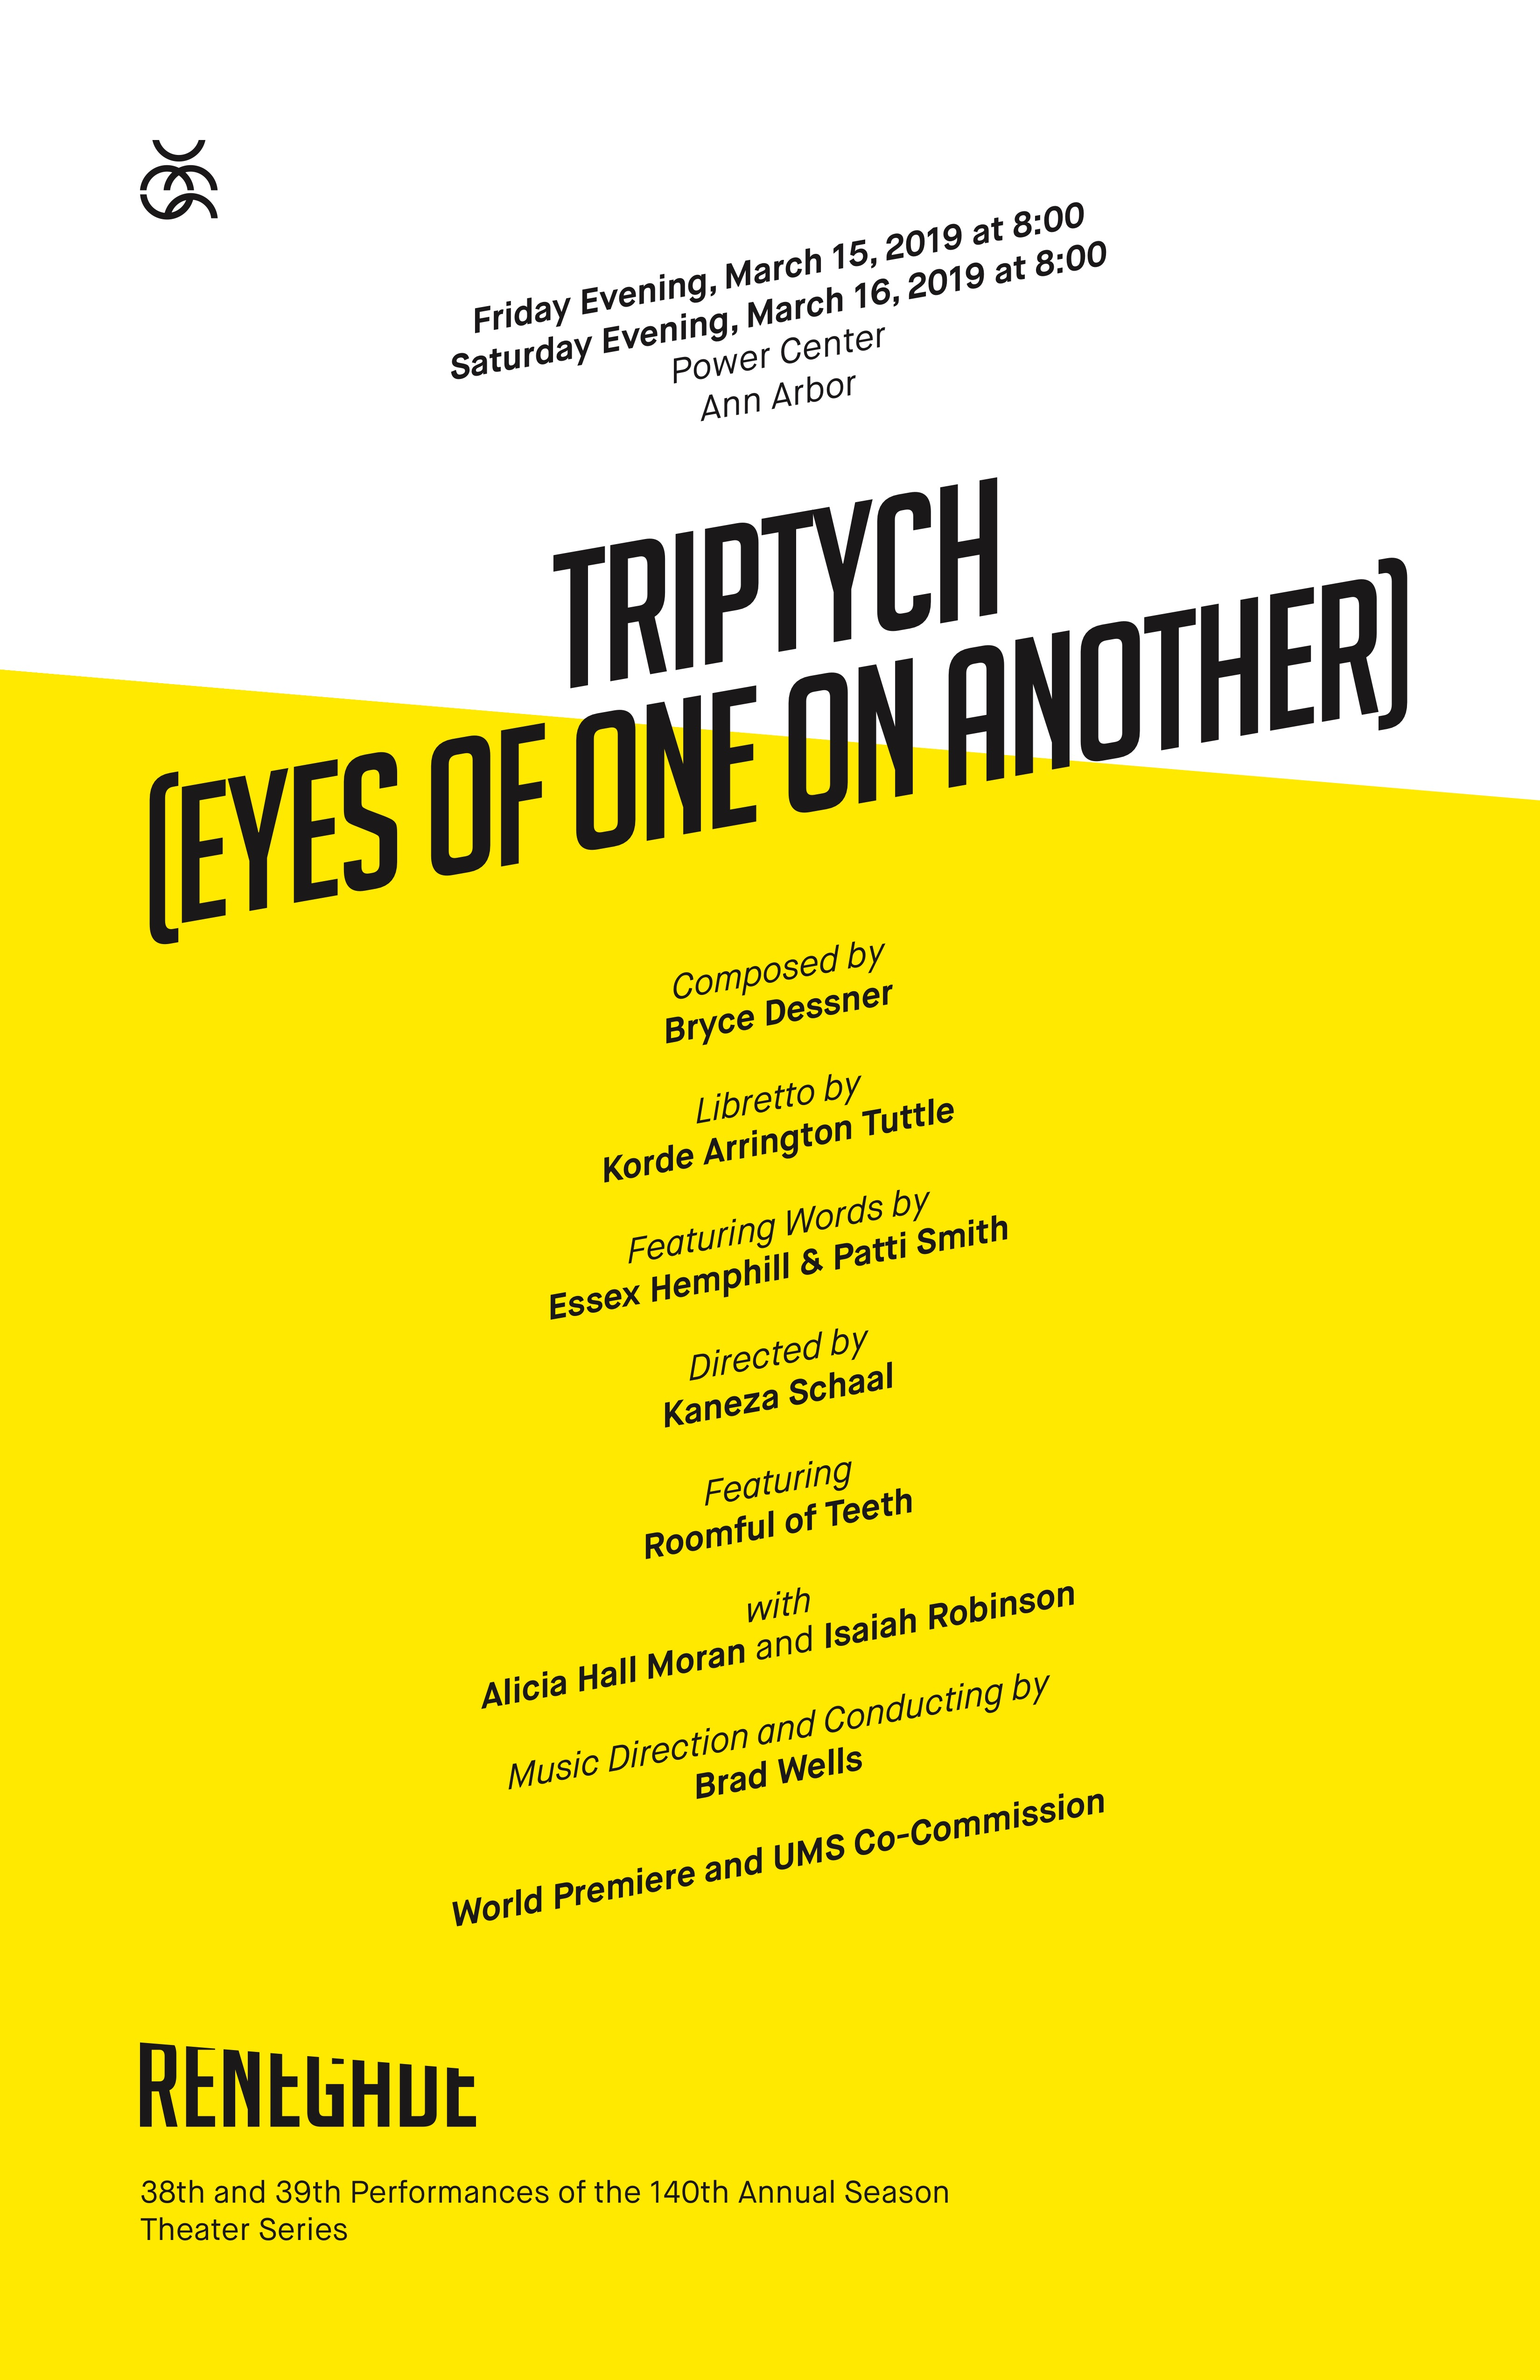 UMS Concert Program, March 15, 2019 - Triptych (Eyes of One on Another) image